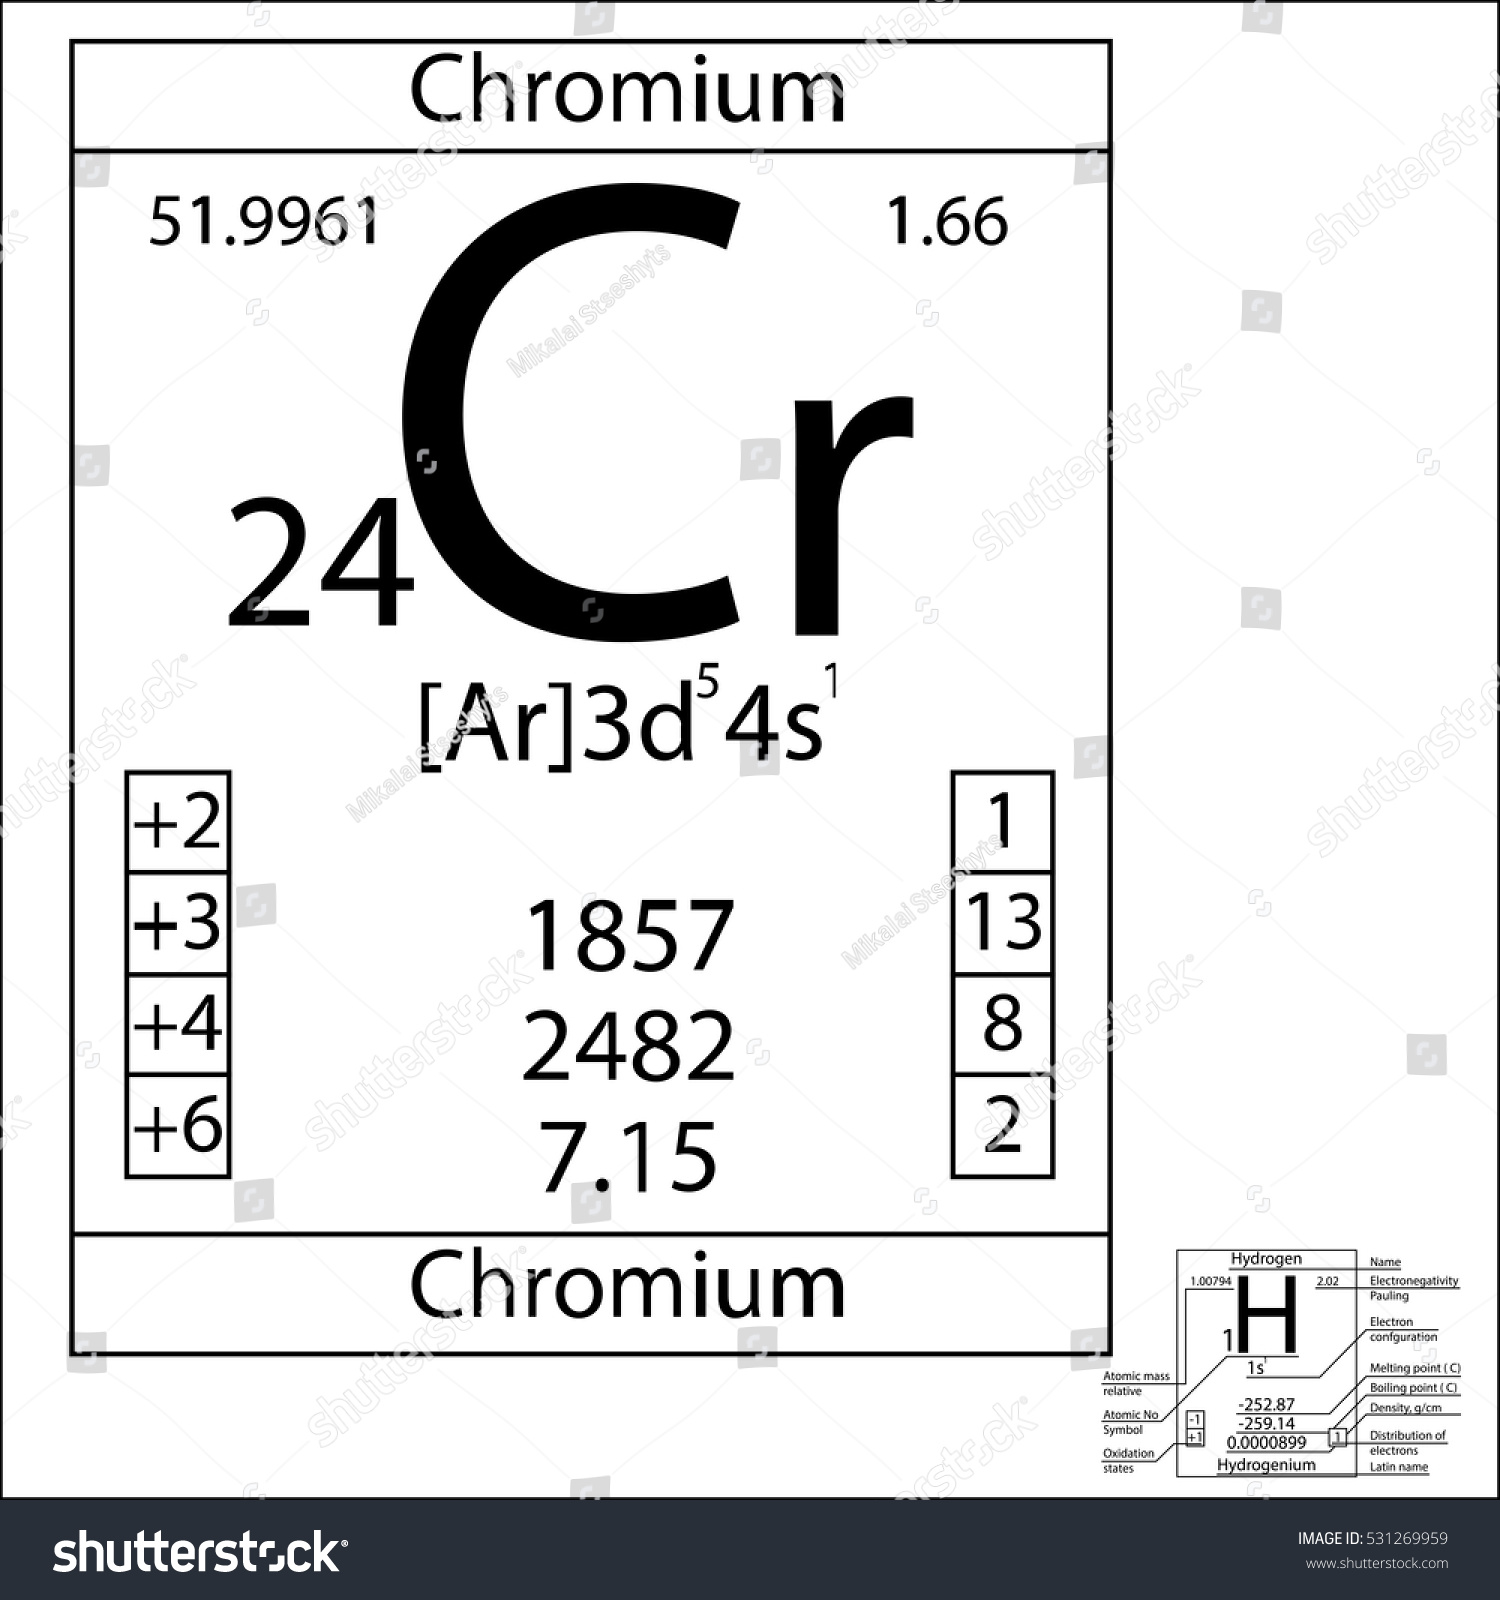 Chromium on the periodic table images periodic table images chromium on the periodic table gallery periodic table images chromium on the periodic table choice image gamestrikefo Image collections